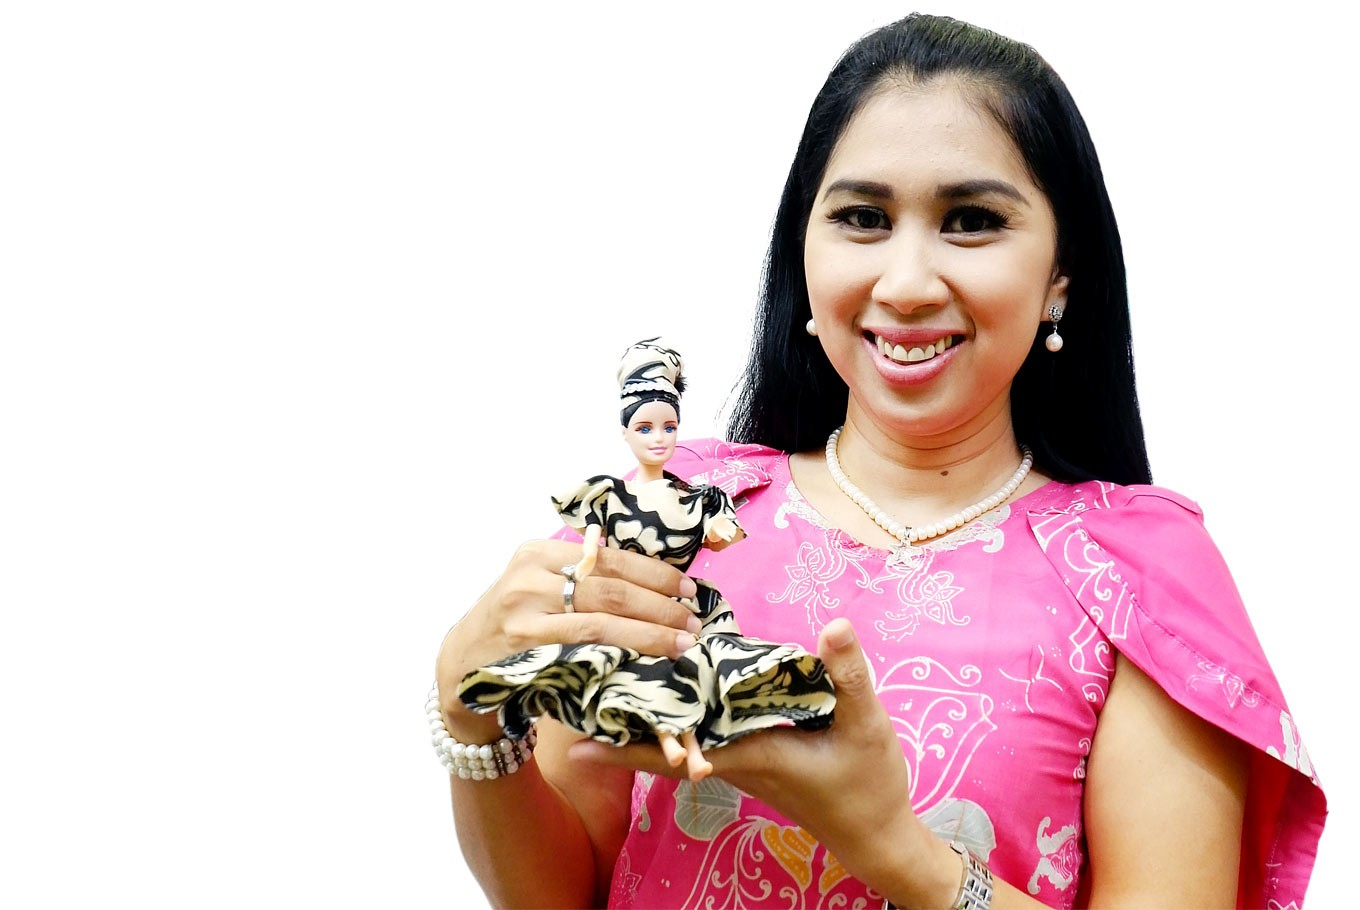 Social entrepreneur Lusia E. Kiroyan teams up with female inmates to promote Indonesia through dolls dressed in batik. Image: JP/A. Kurniawan Ulung